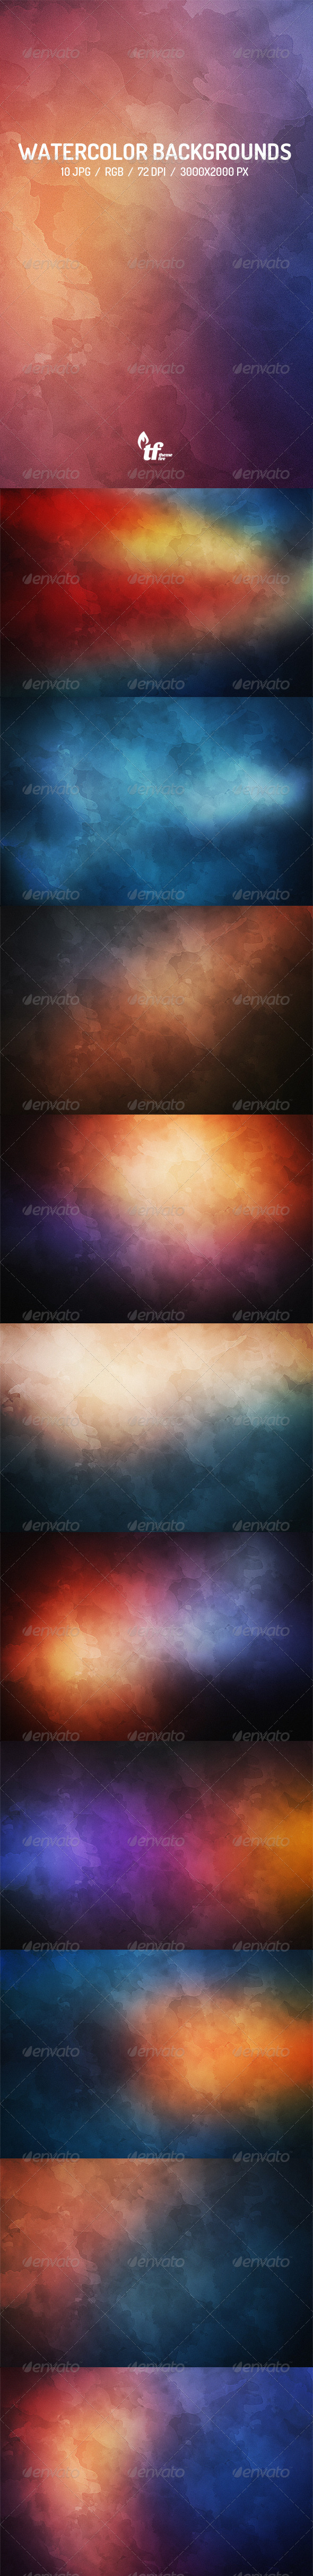 GraphicRiver 10 Watercolor Backgrounds 7839387